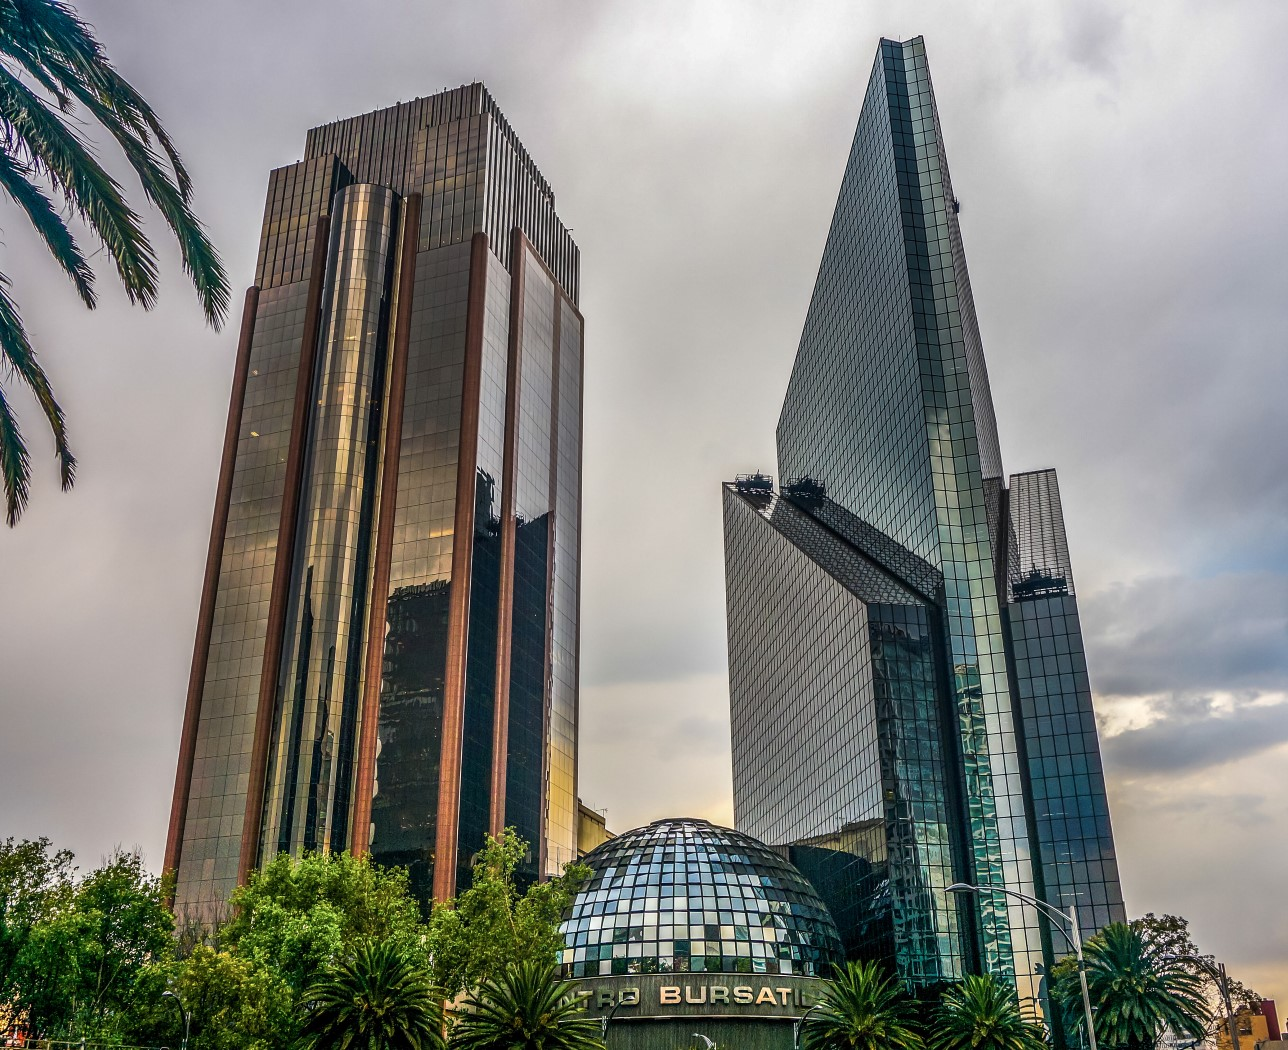 Two glass skyscrapers with a dome-shaped building between them